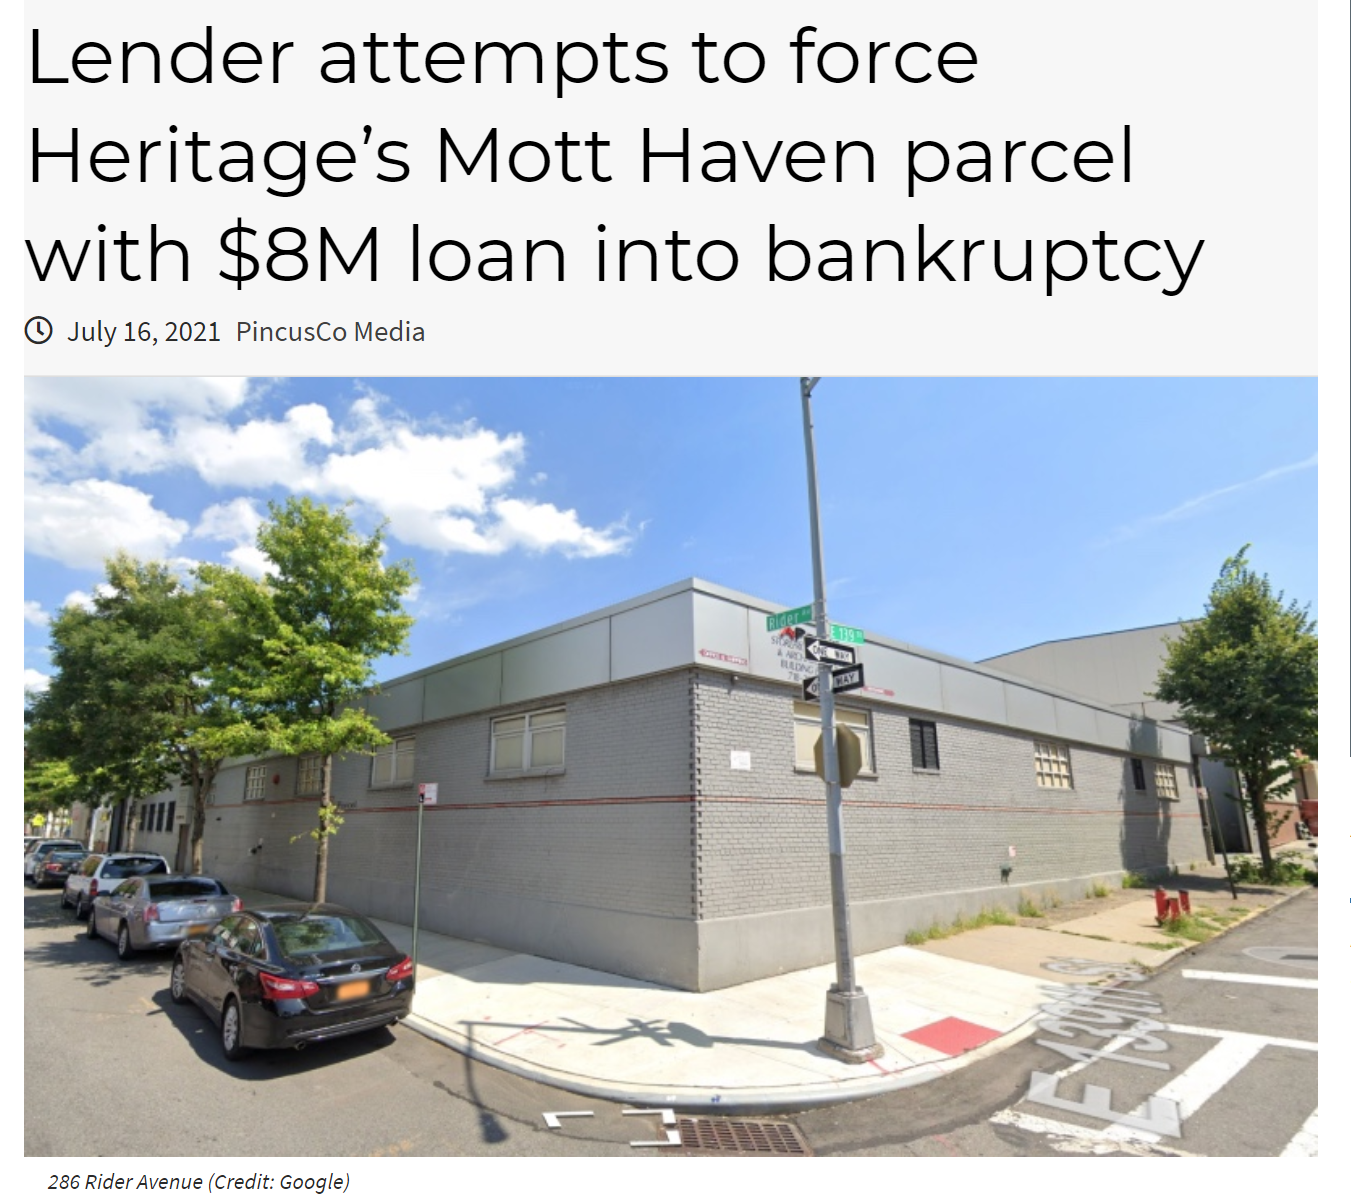 Lender attempts to force Heritage's Mott Haven parcel with $8M loan into bankruptcy